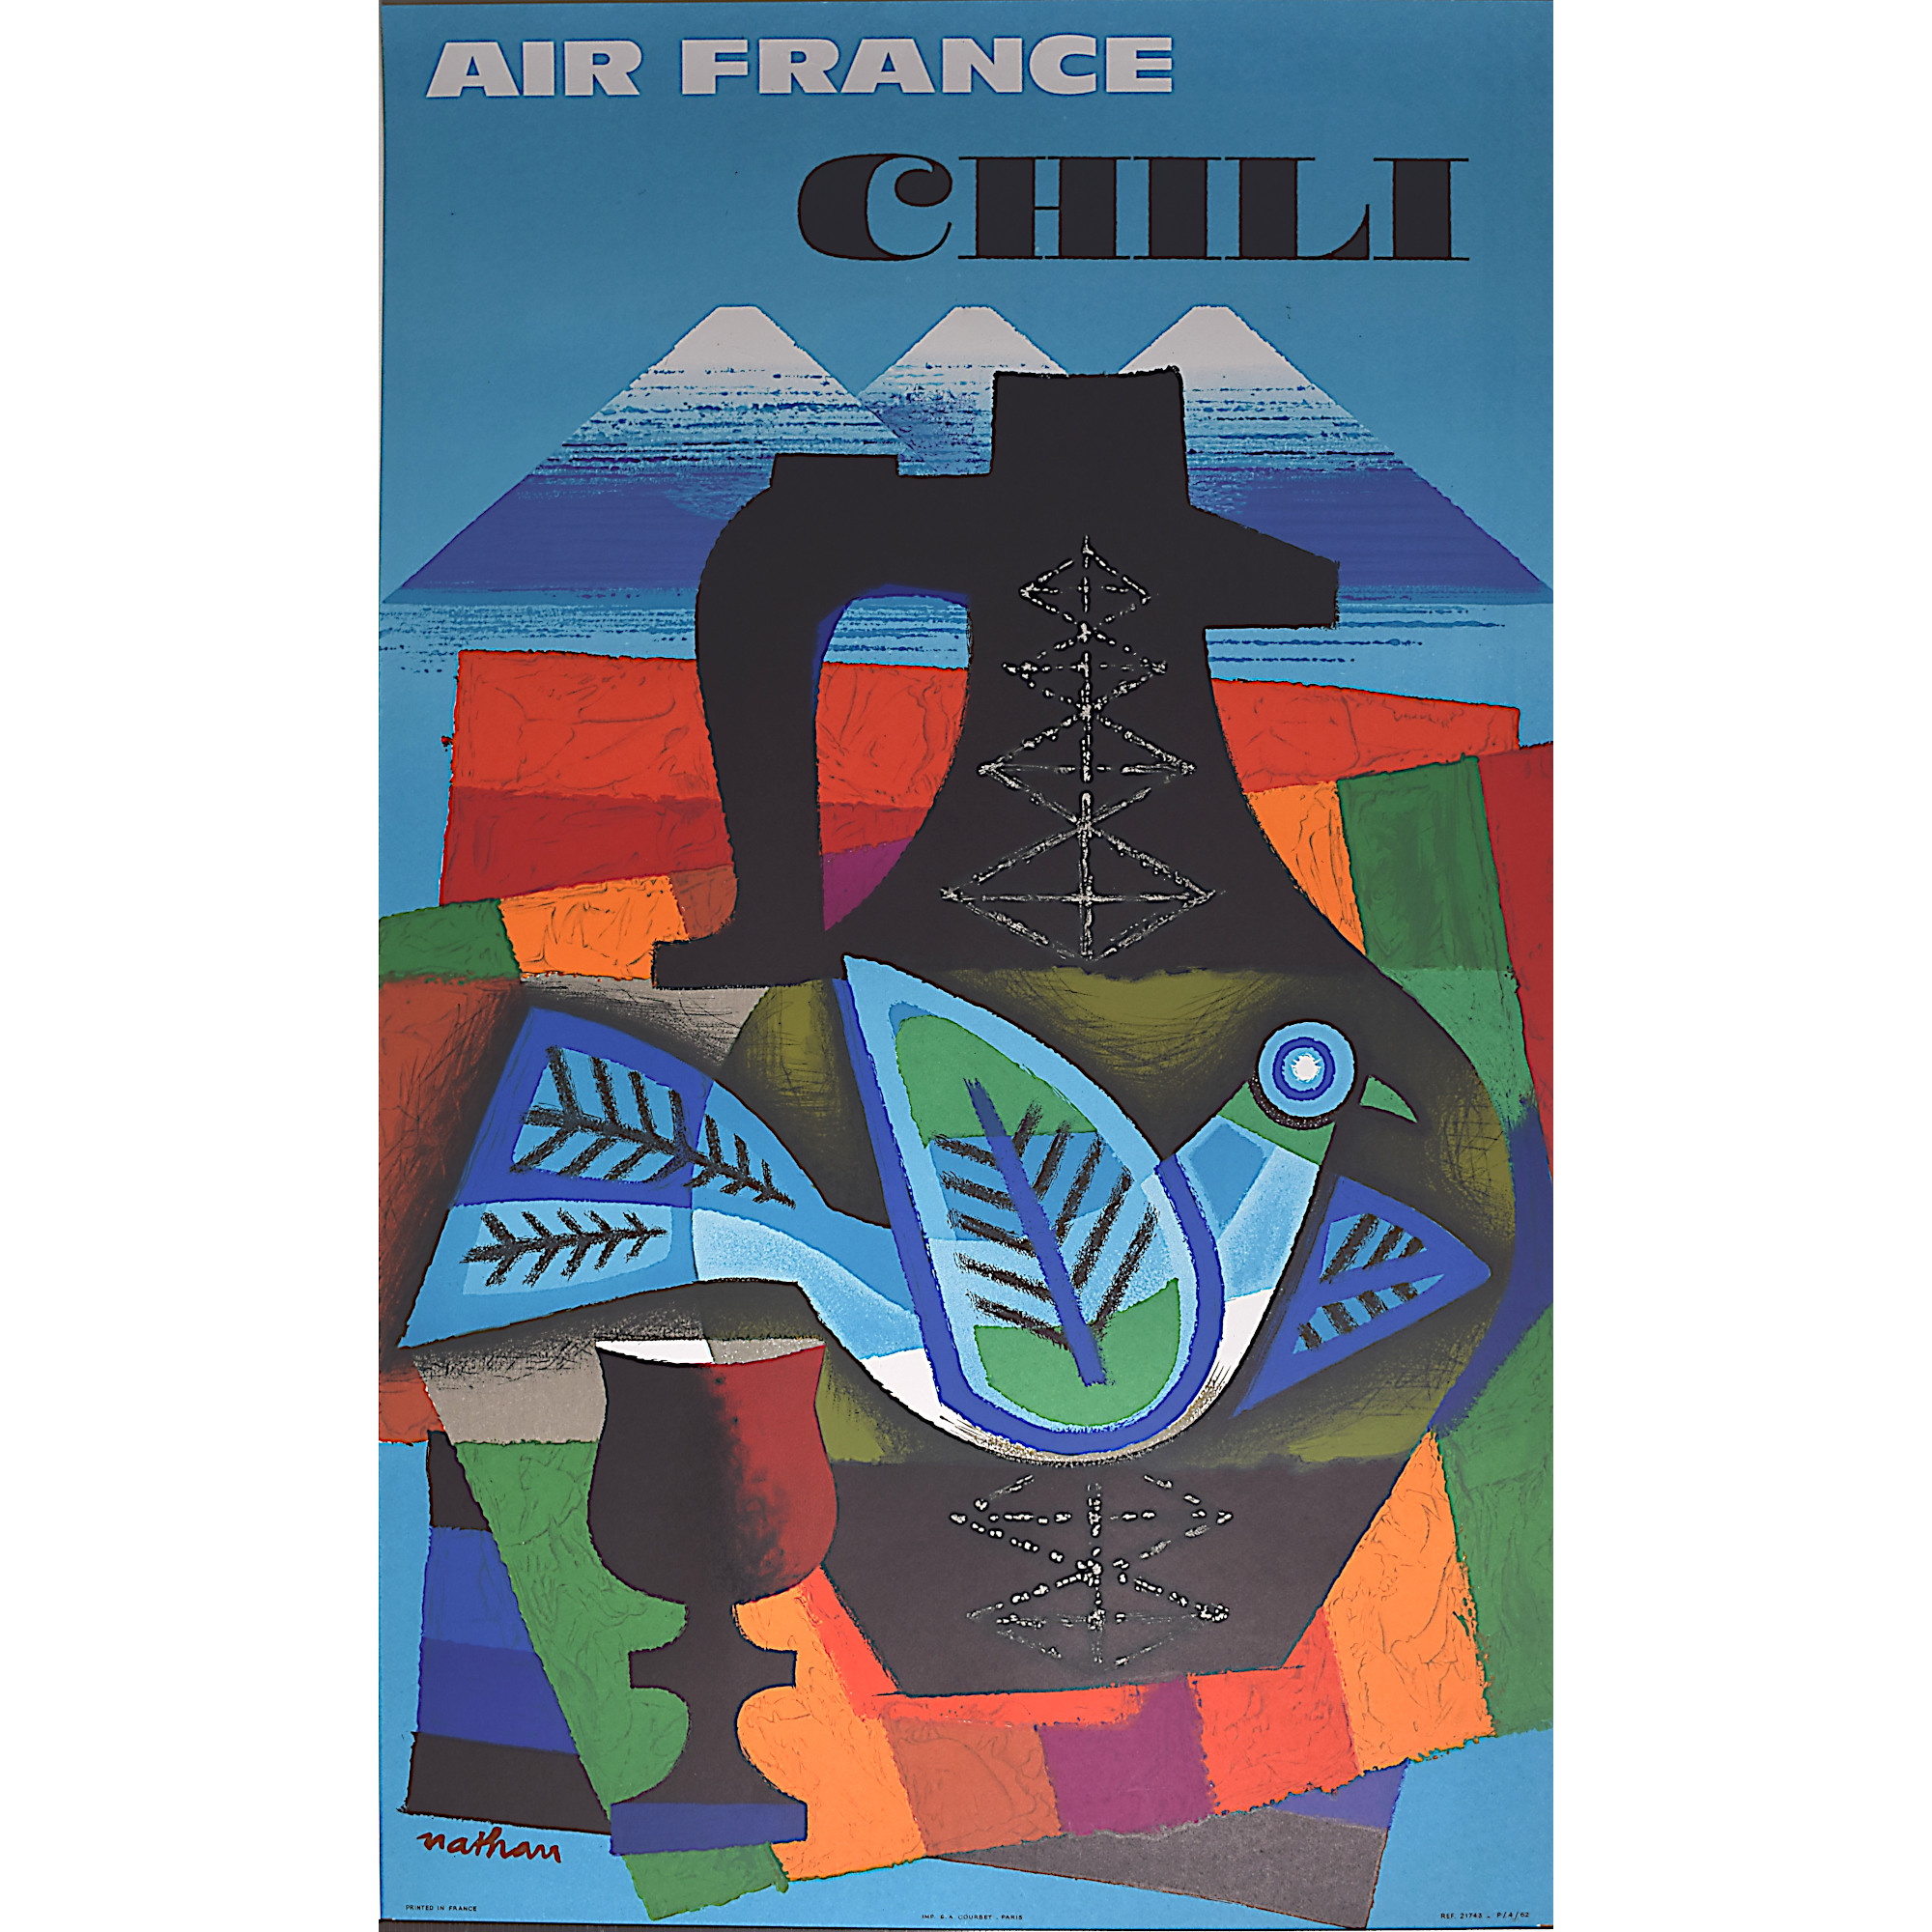 Air France poster for Chile Chili Nathan